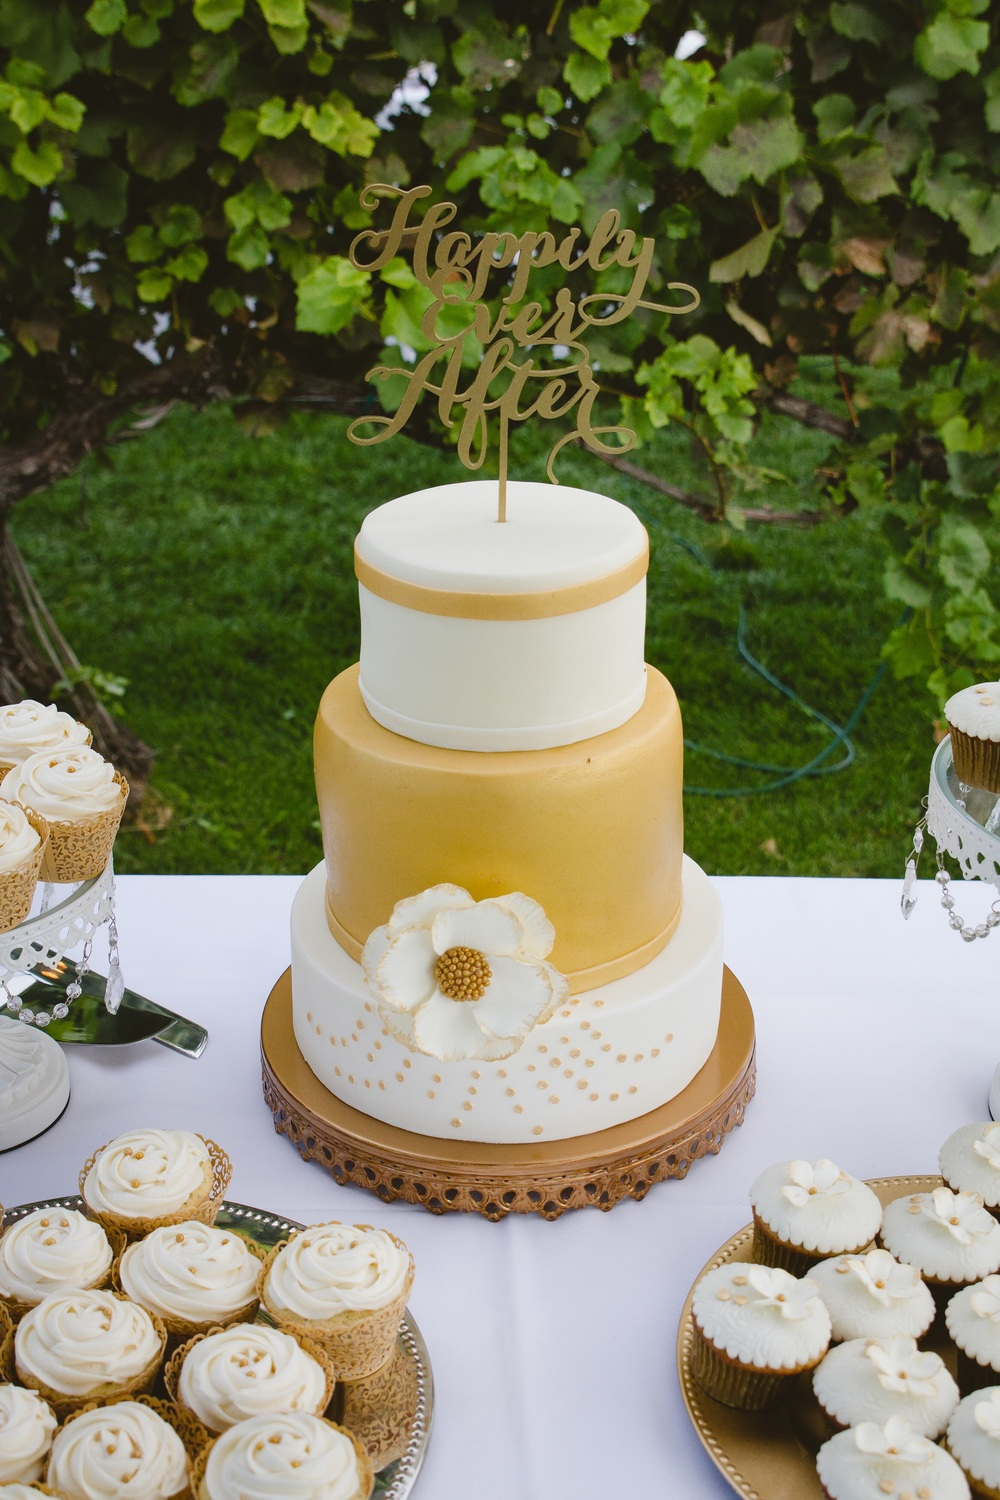 Sweet Crumbs - A Wedding Cake Dream • Wedding Cale • Wedding Cupcakes • Gold • Lake Chelan WA • The Winemakers Wife • Meagan Kludt